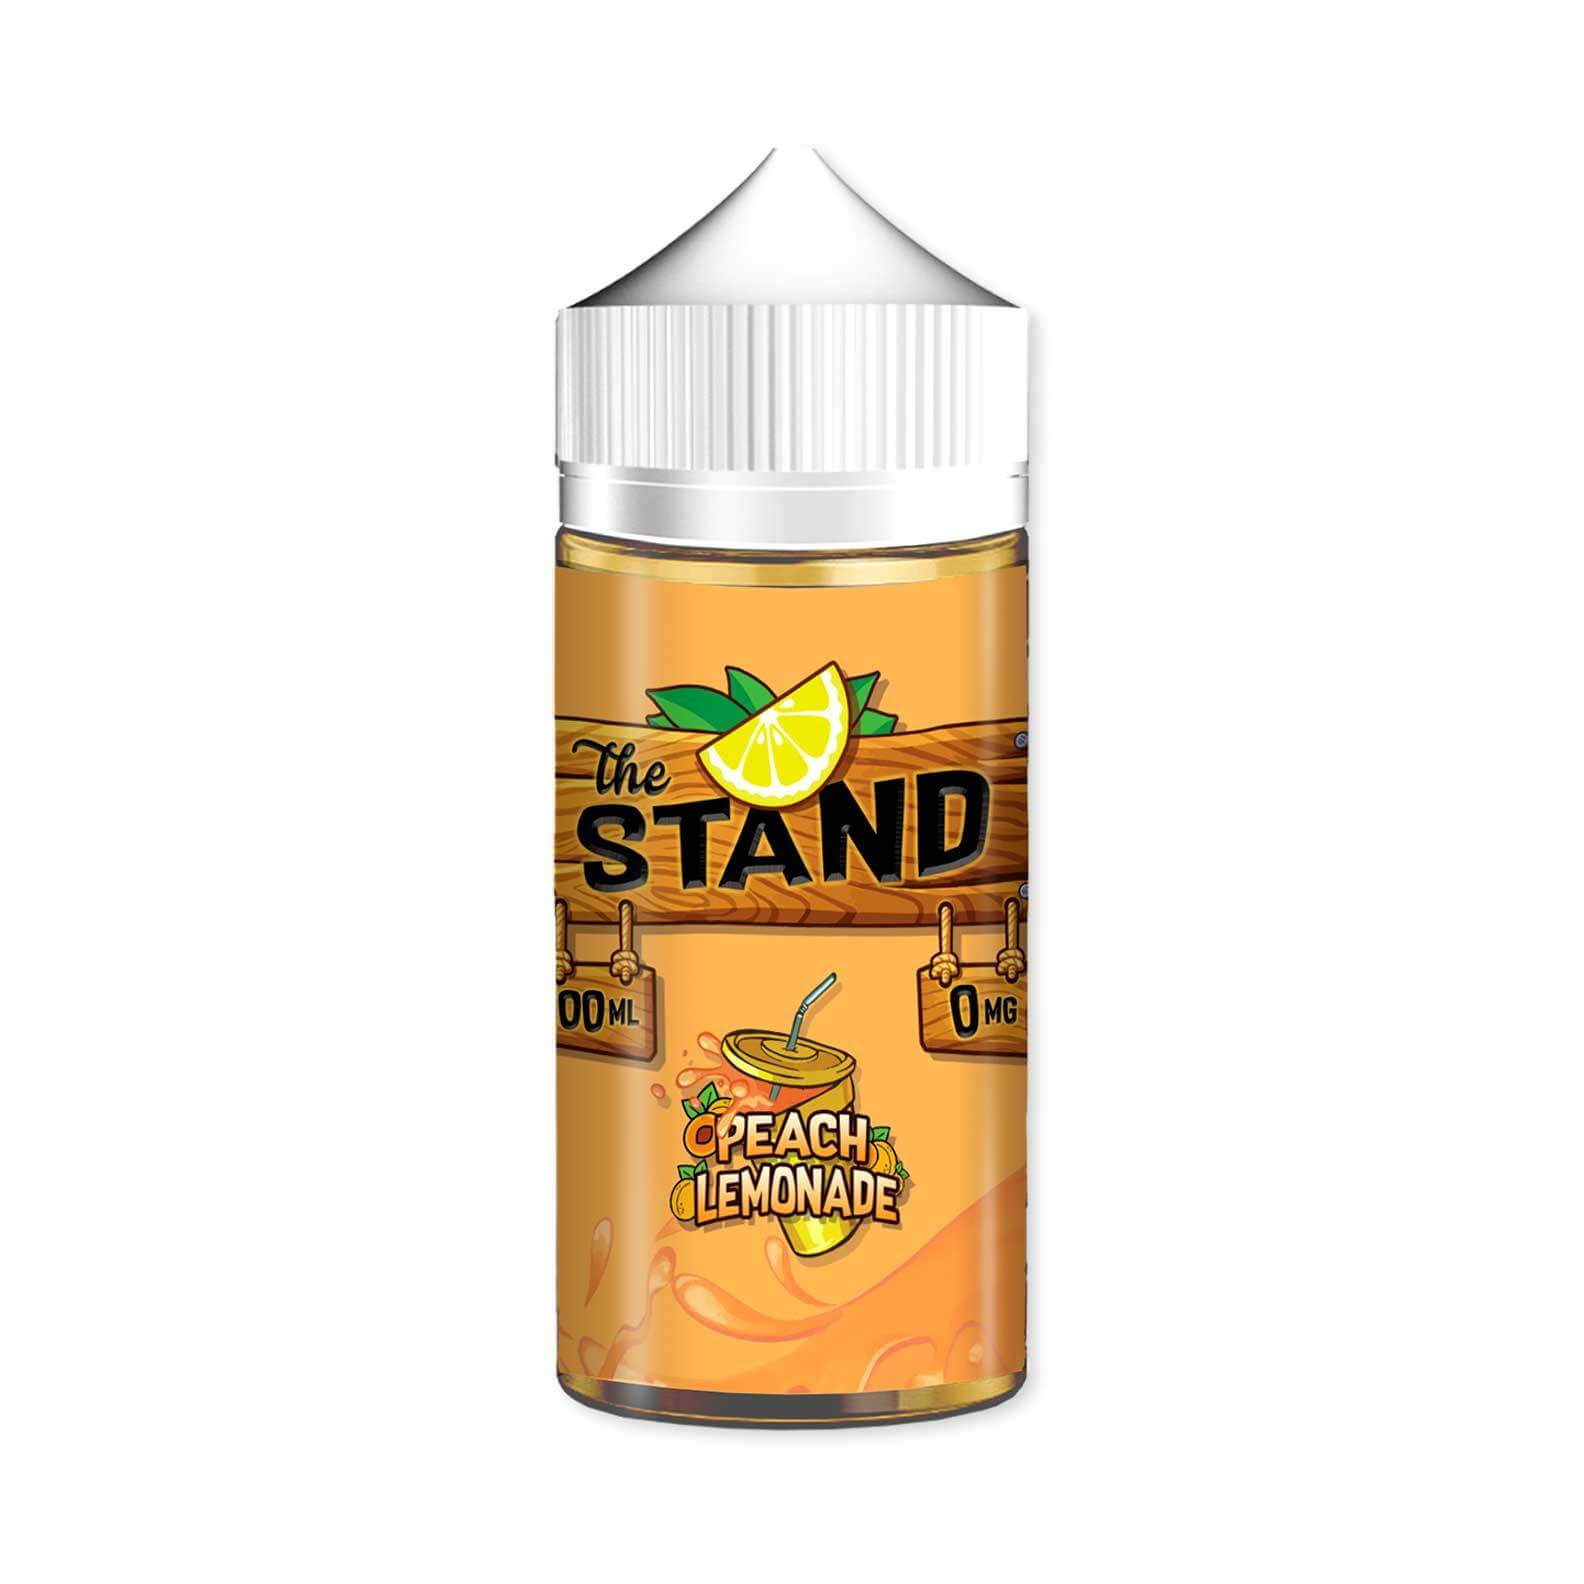 Peach Lemonade - The Stand E Juice